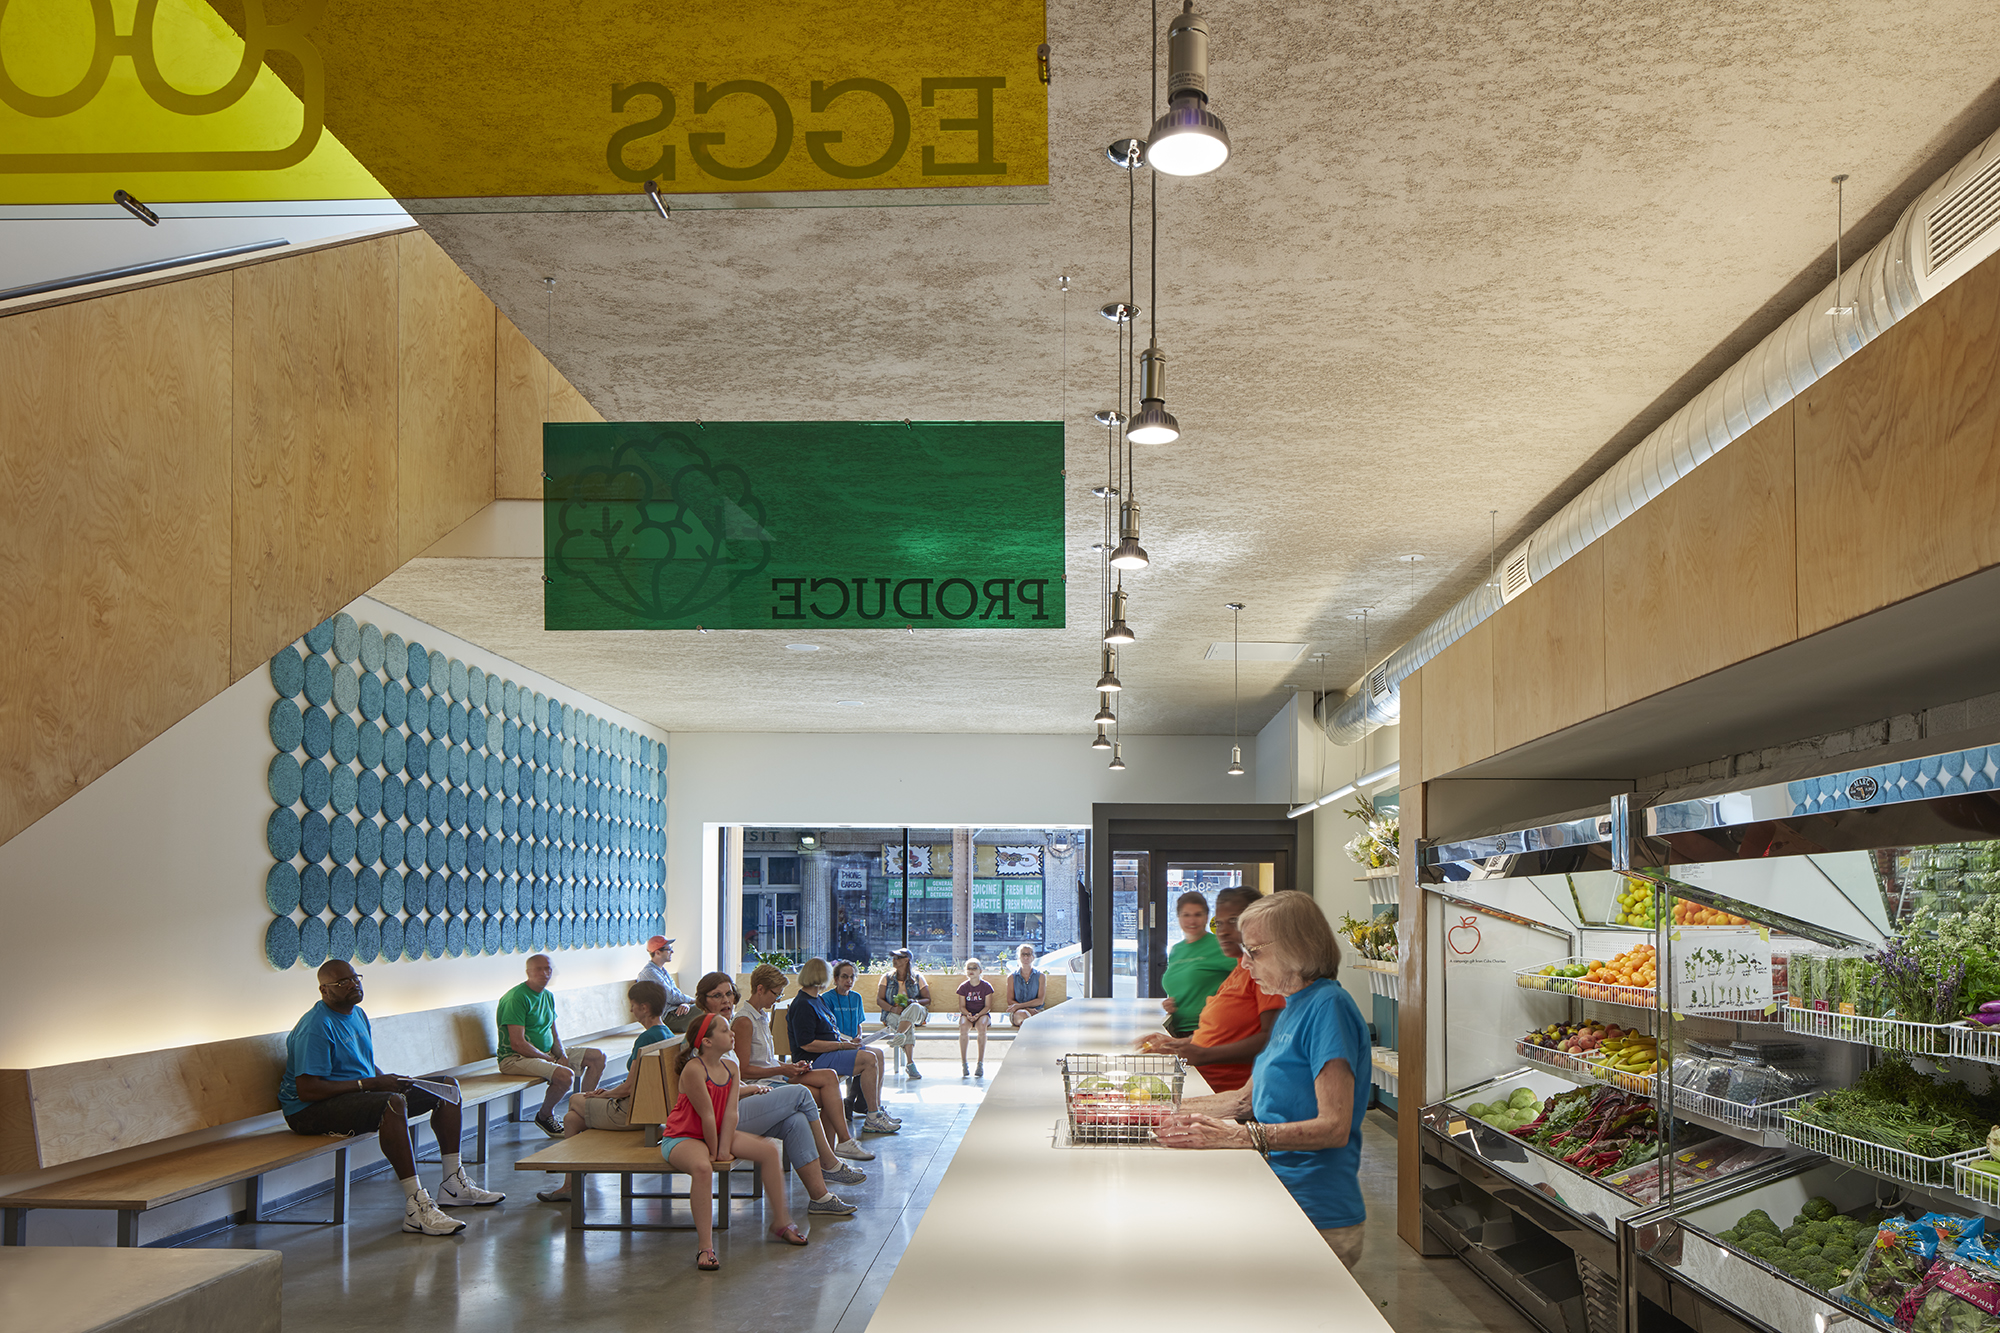 Lakeview Pantry Brings Good Design And Food To Those In Need Architect Magazine Community